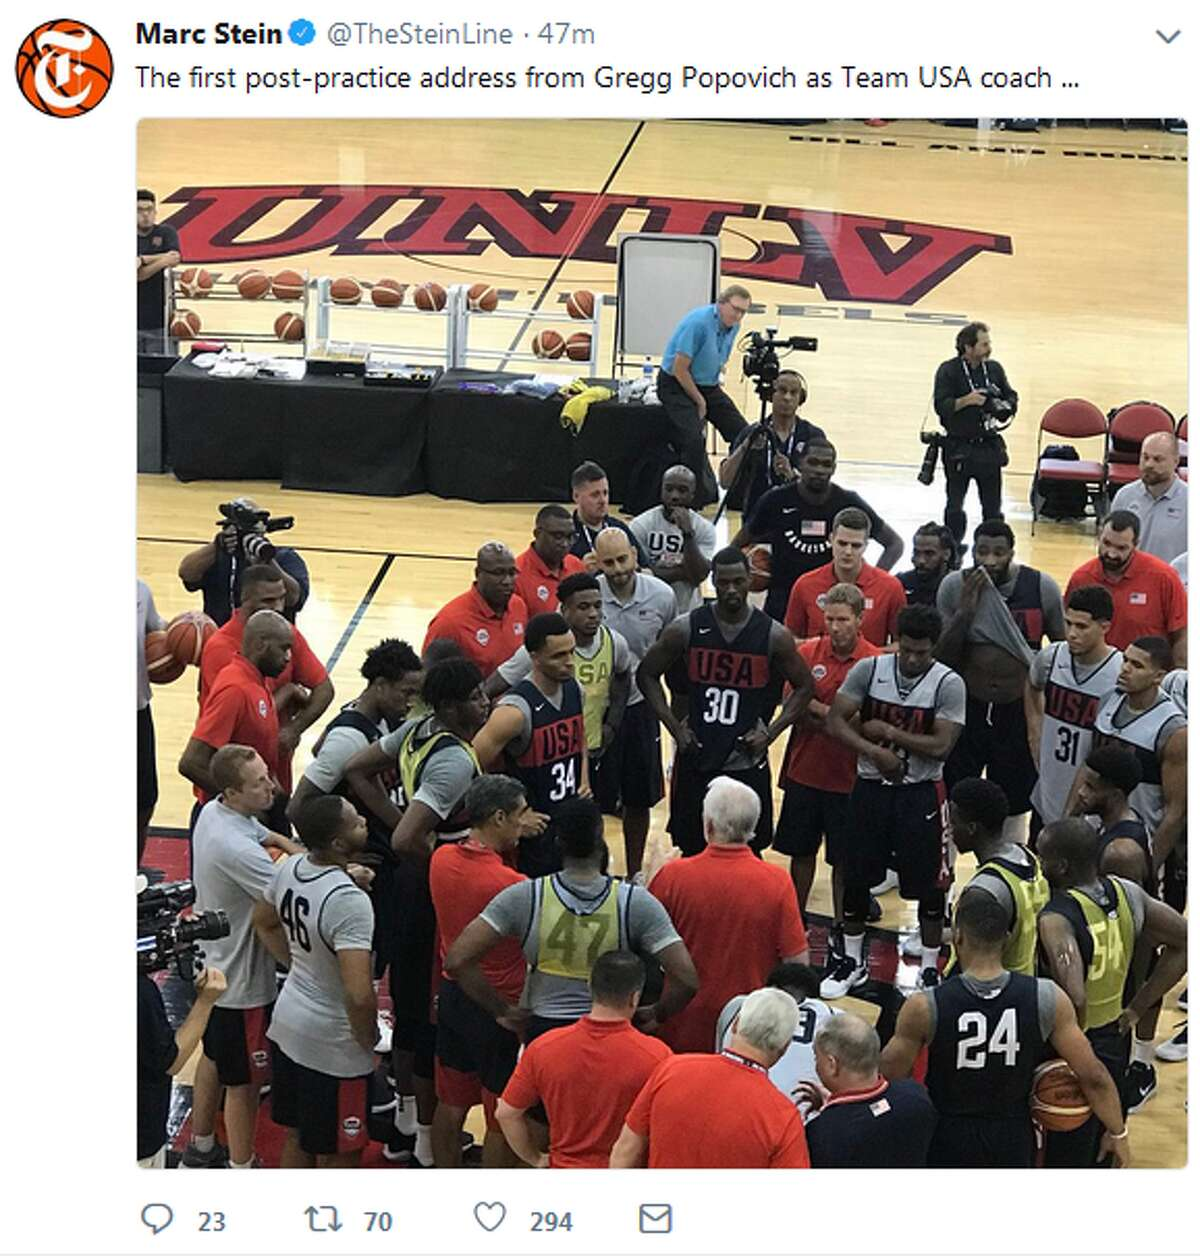 @TheSteinLine: The first post-practice address from Gregg Popovich as Team USA coach ...